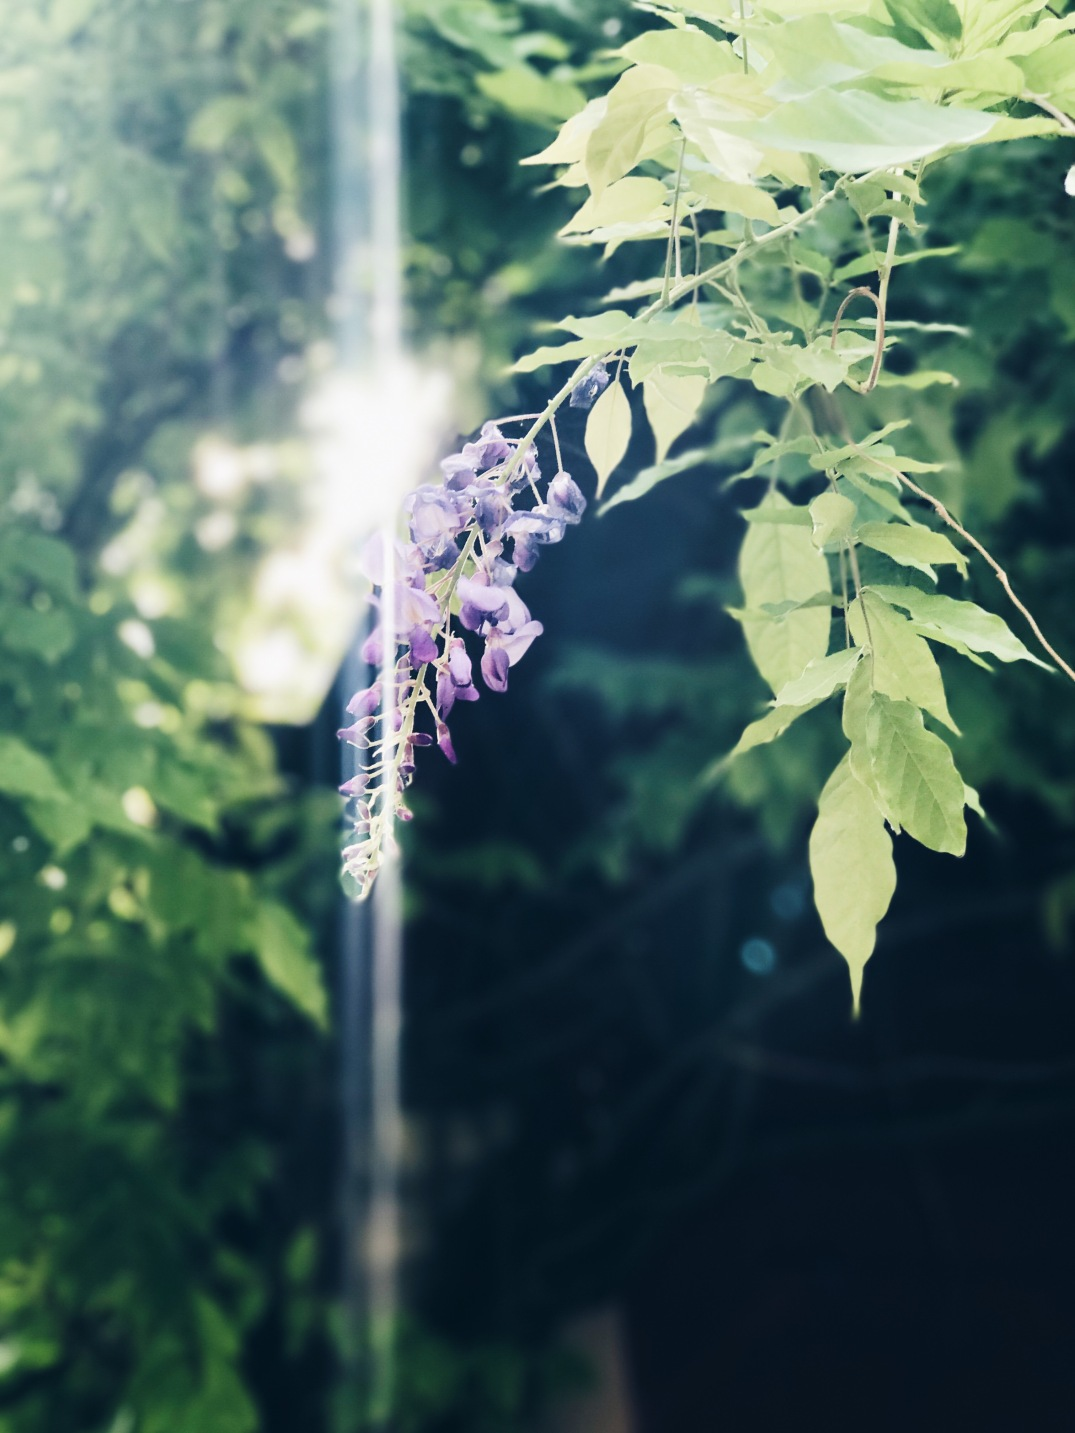 wisteria in the sun